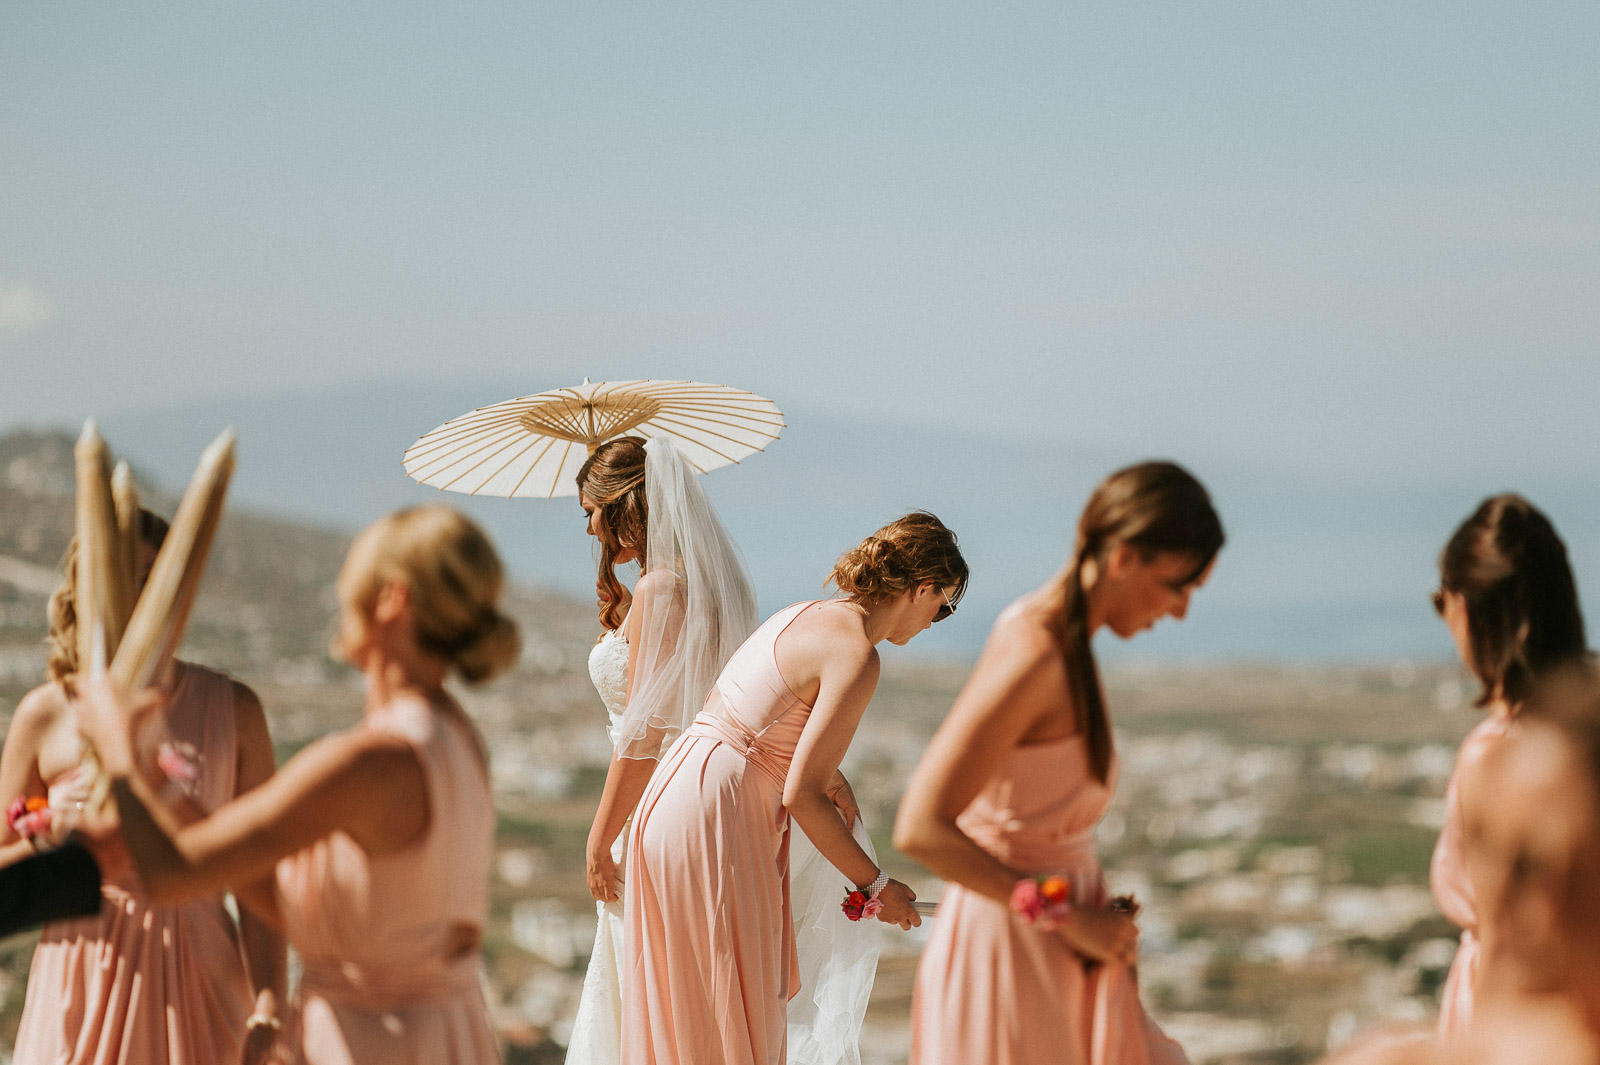 Santorini-Wedding-Photographer-Greece-Destination-Weddings-Mait-Juriado-M&J-Studios-037